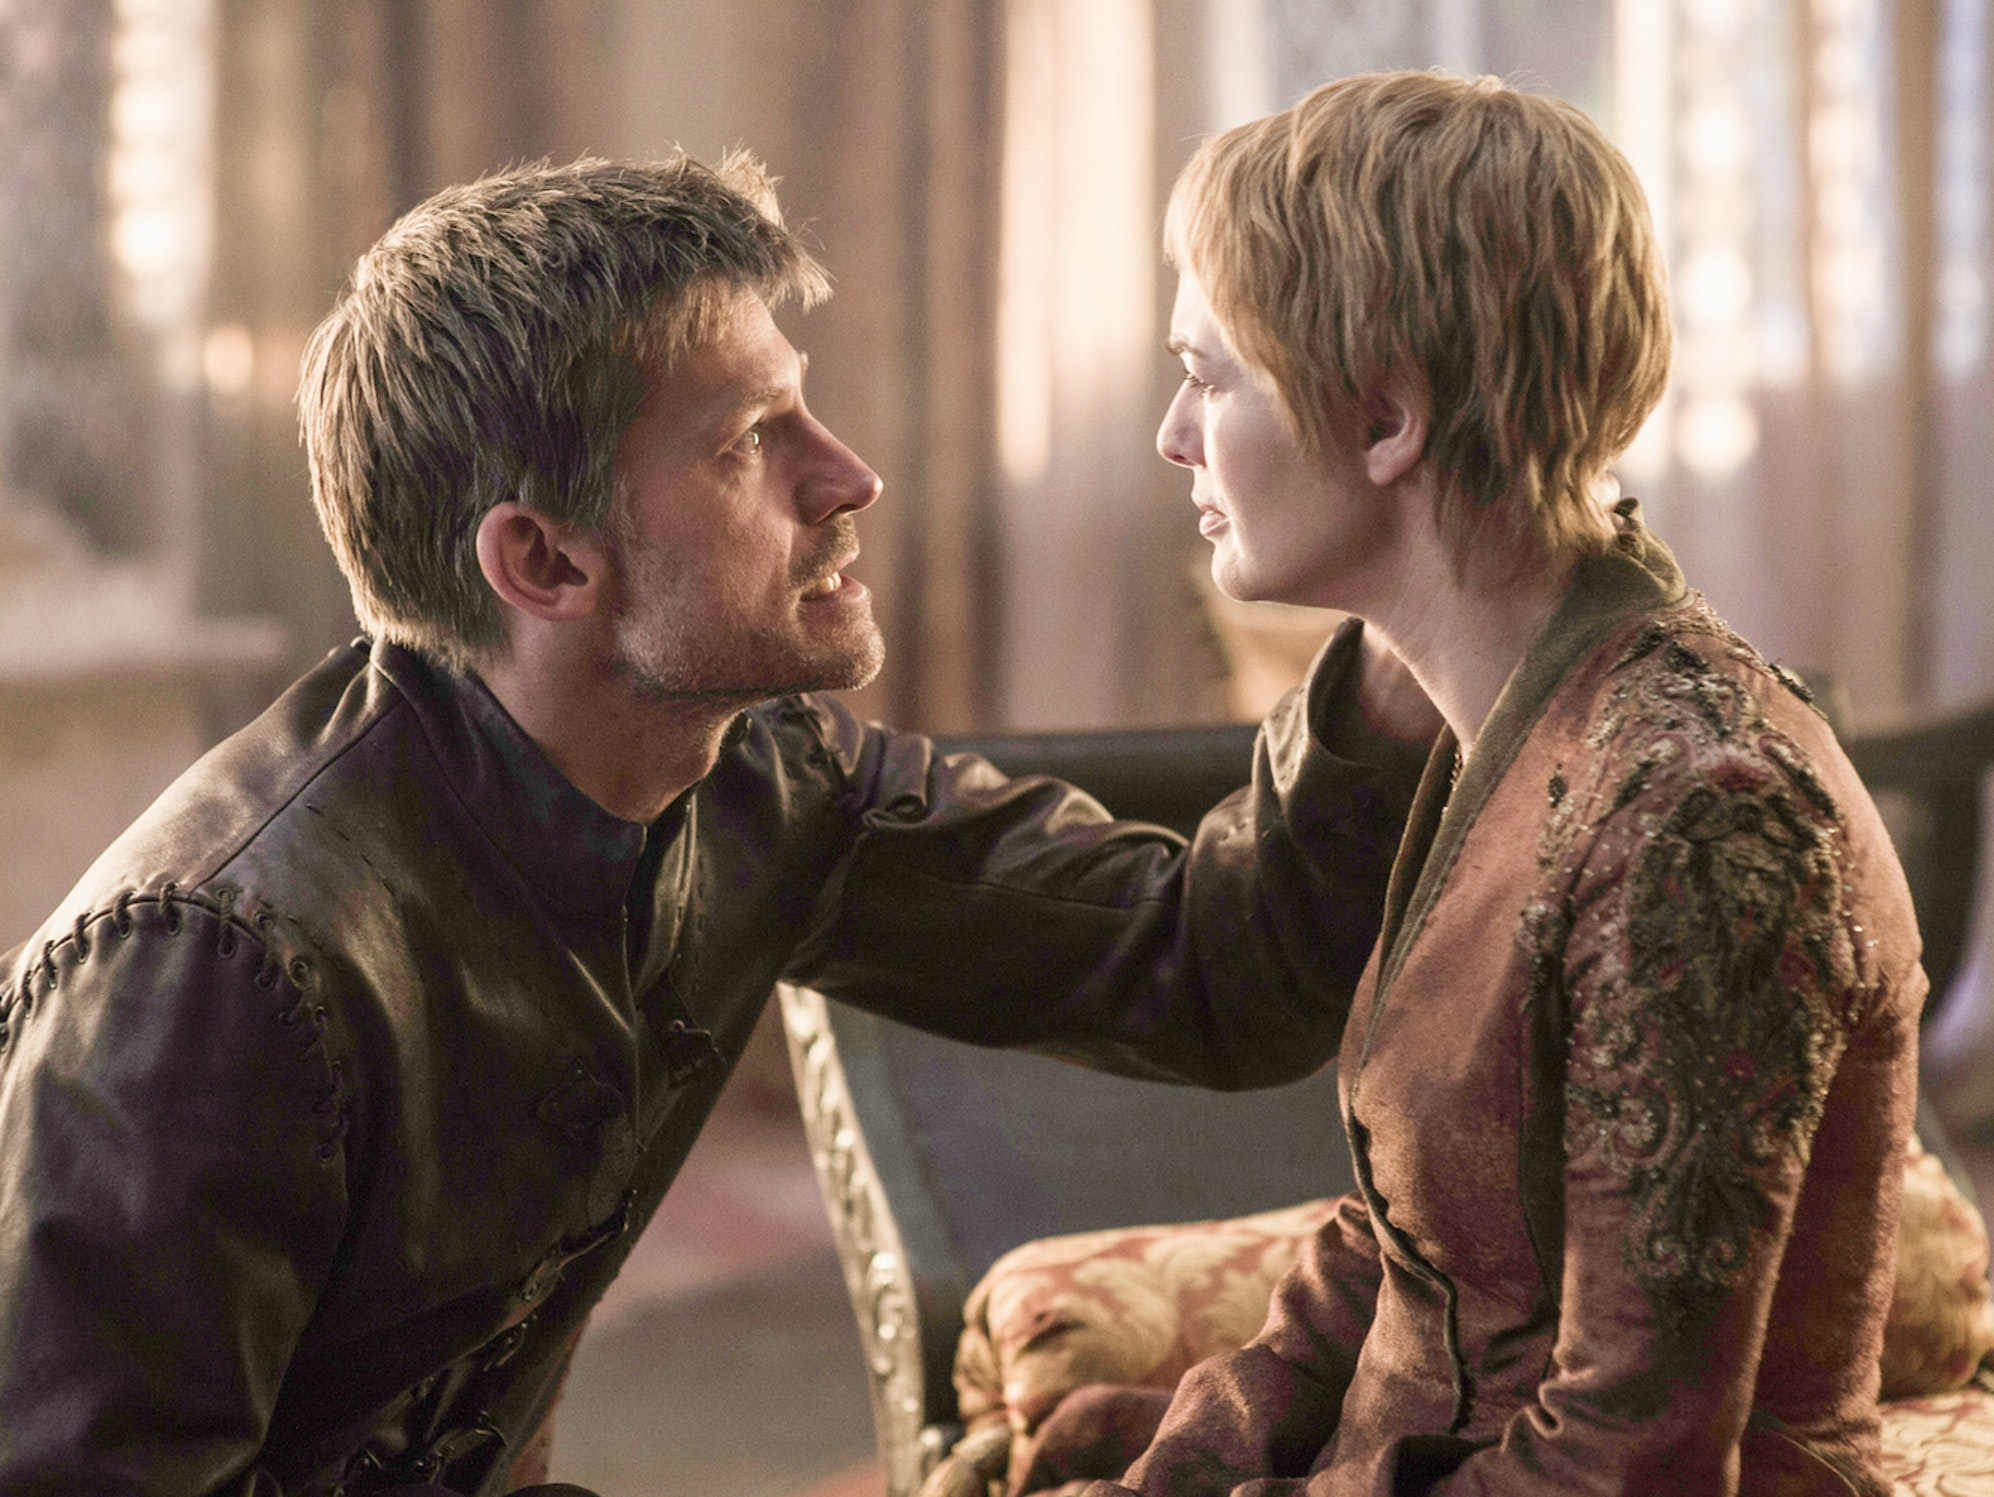 Jaime Lannister Says He Won't Kill Cersei on Game of Thrones